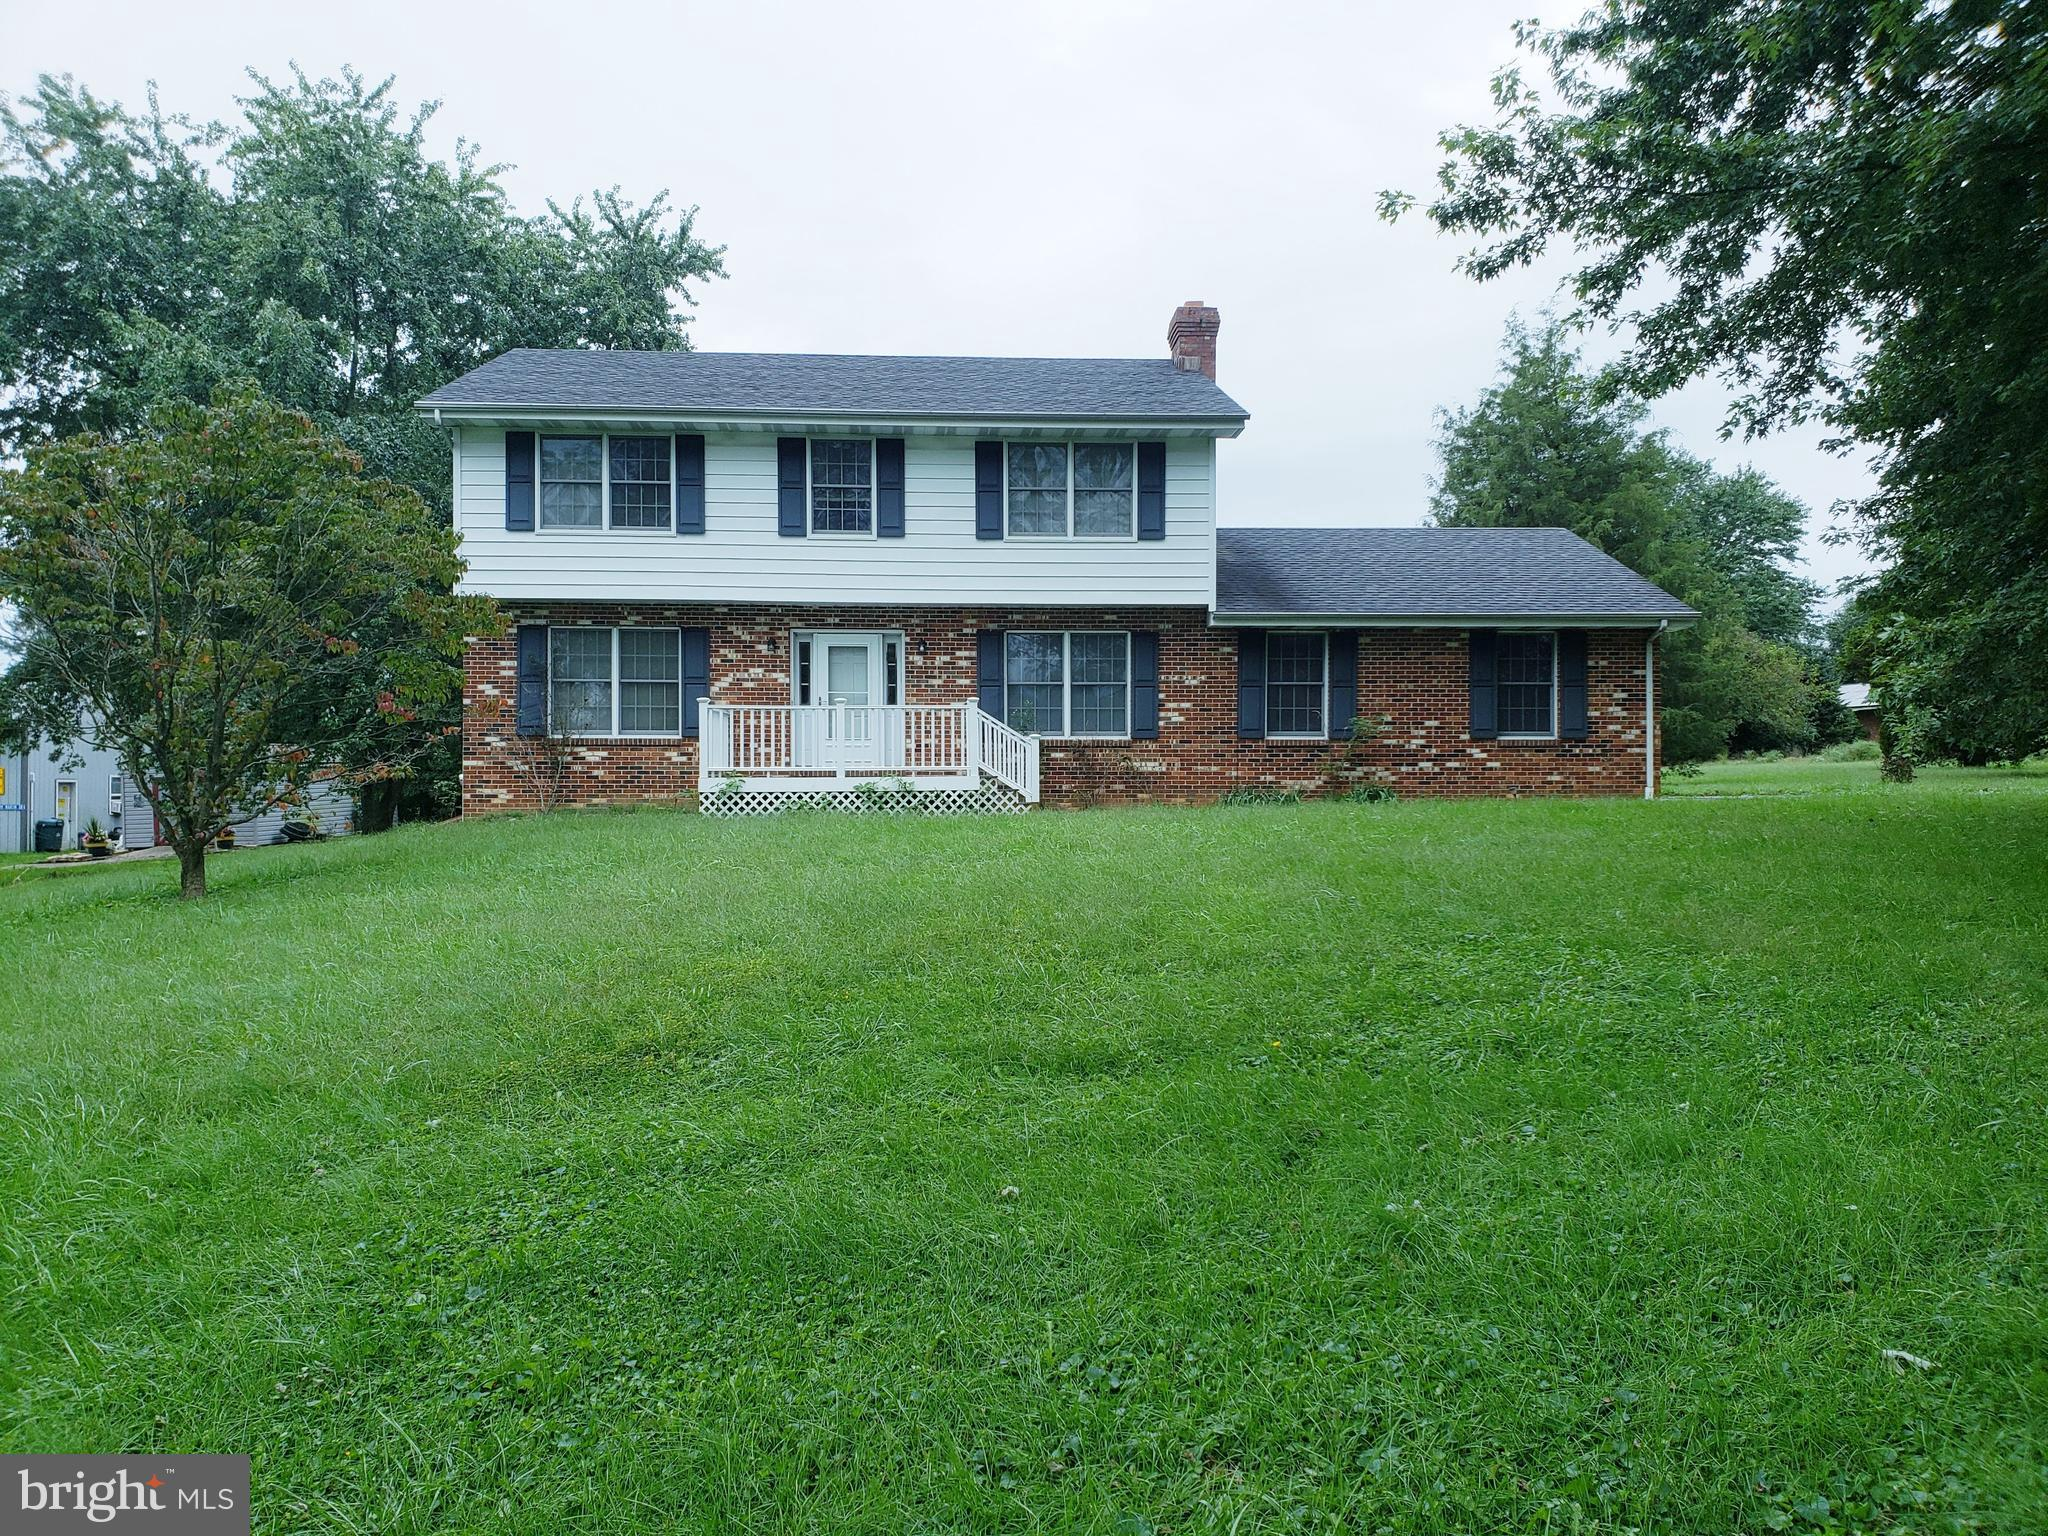 2449 JACOB TOME MEMORIAL HIGHWAY, COLORA, MD 21917